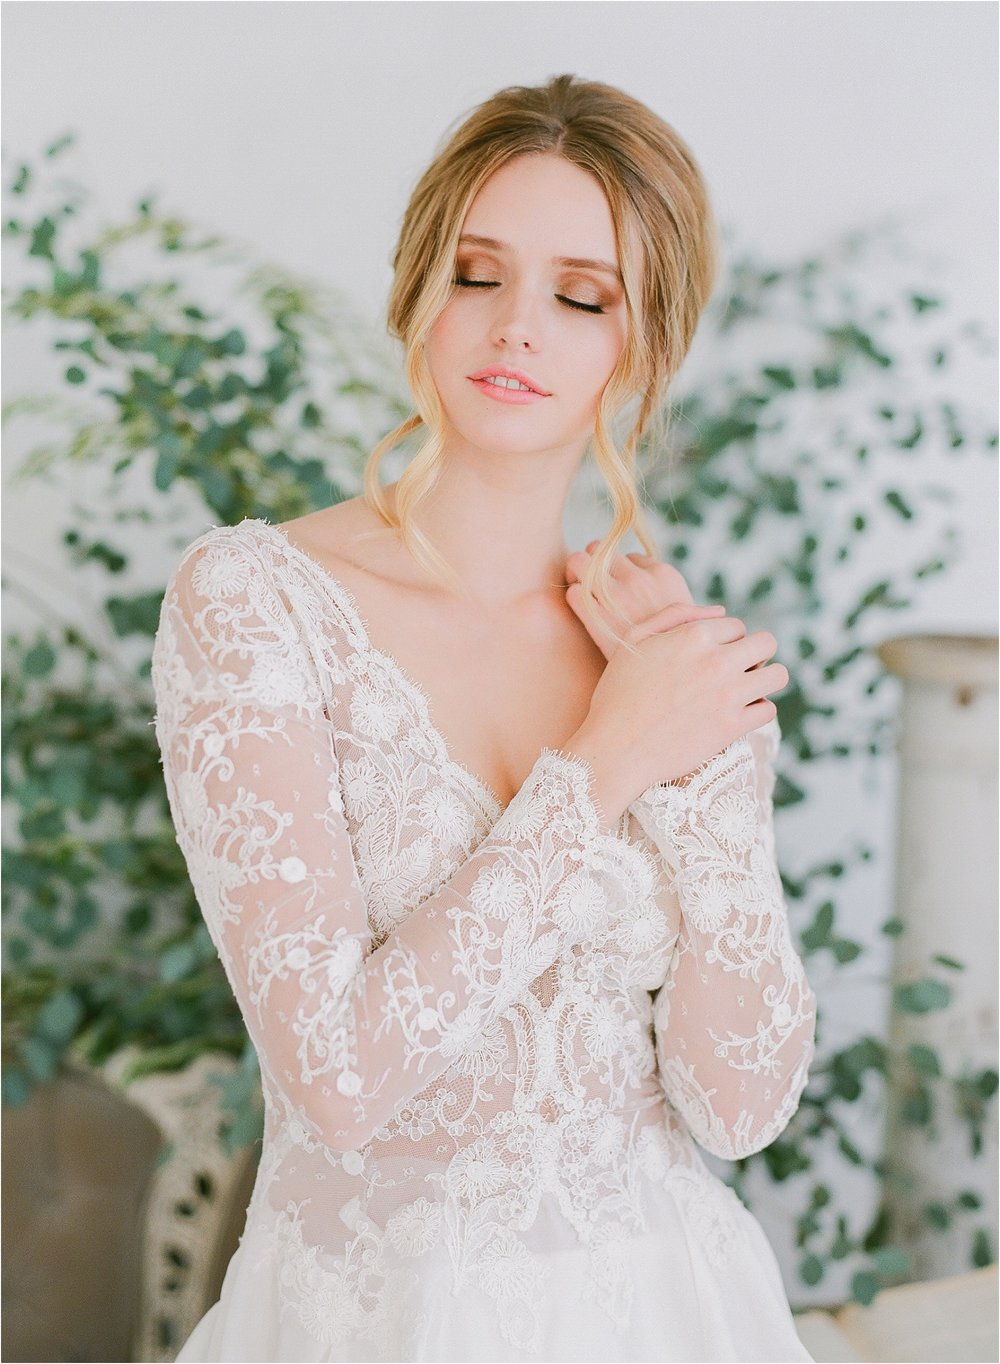 Steve Torres Photography Jinza Bridal 2017 Catalog-17.jpg